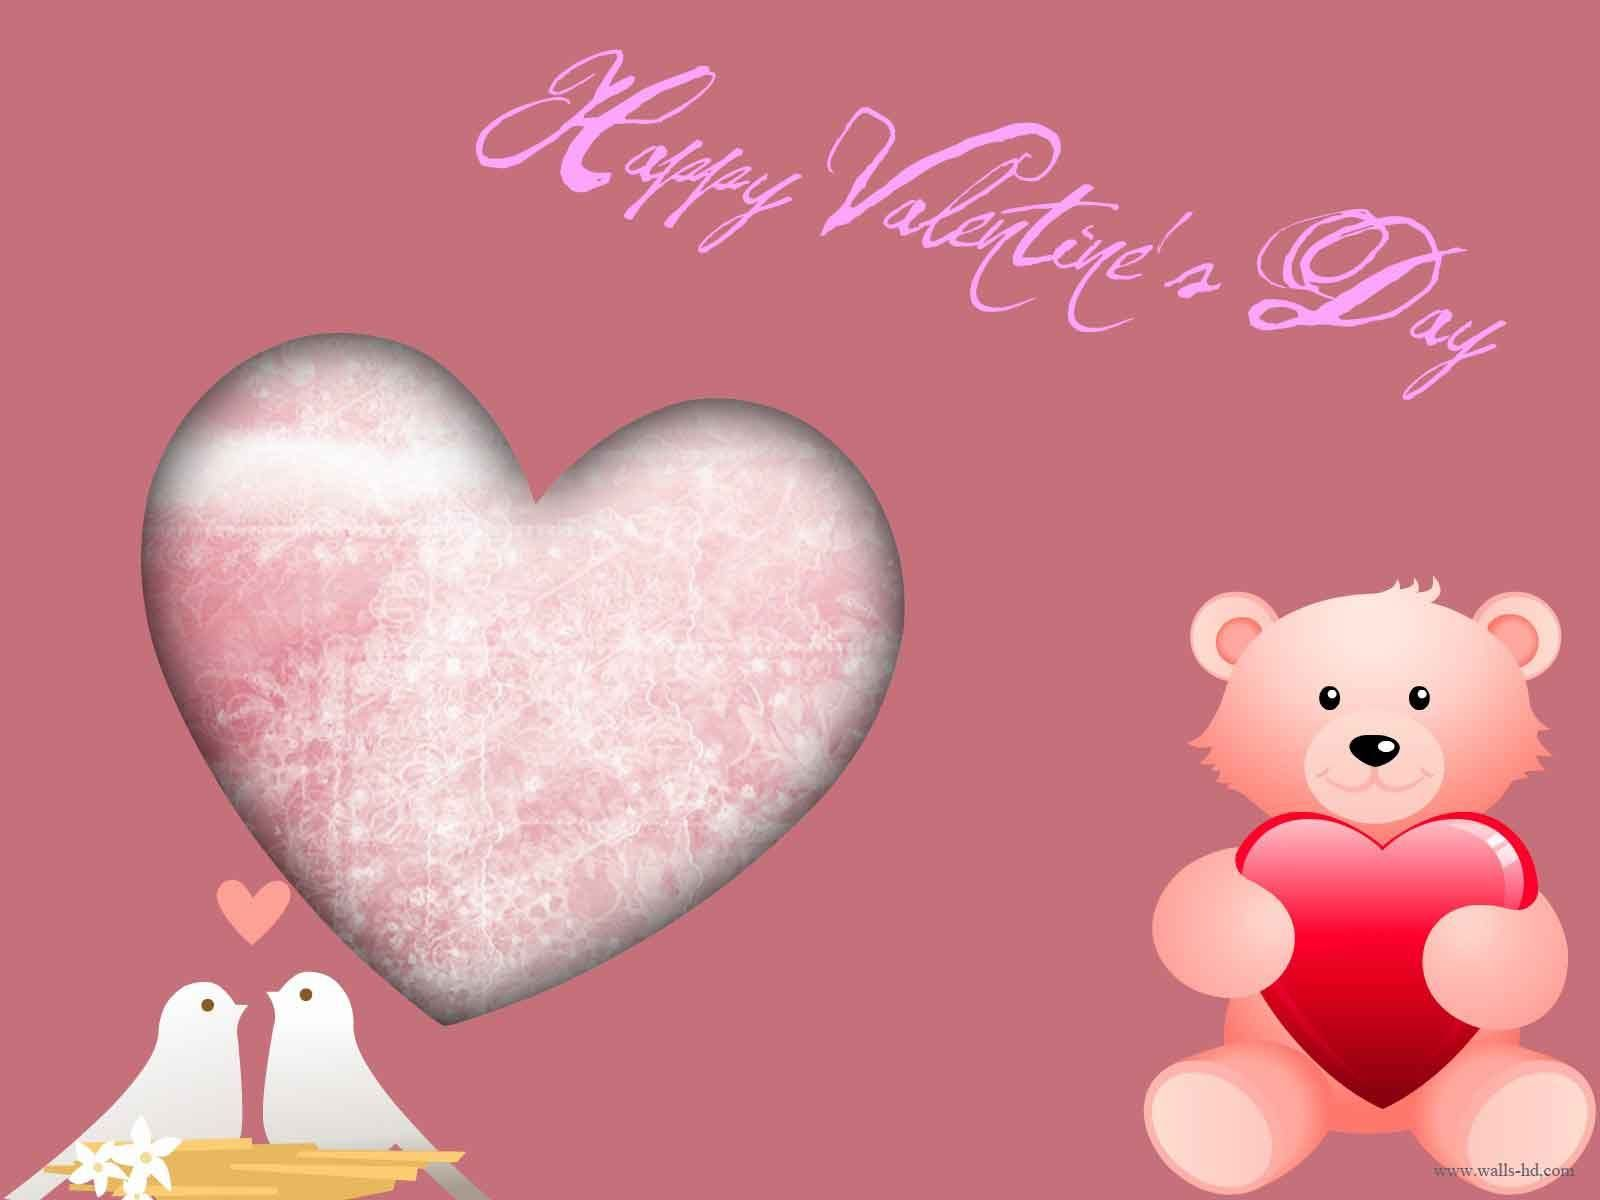 Cute Valentines Day Wallpaper Wallpapers Backgrounds 1600x1200